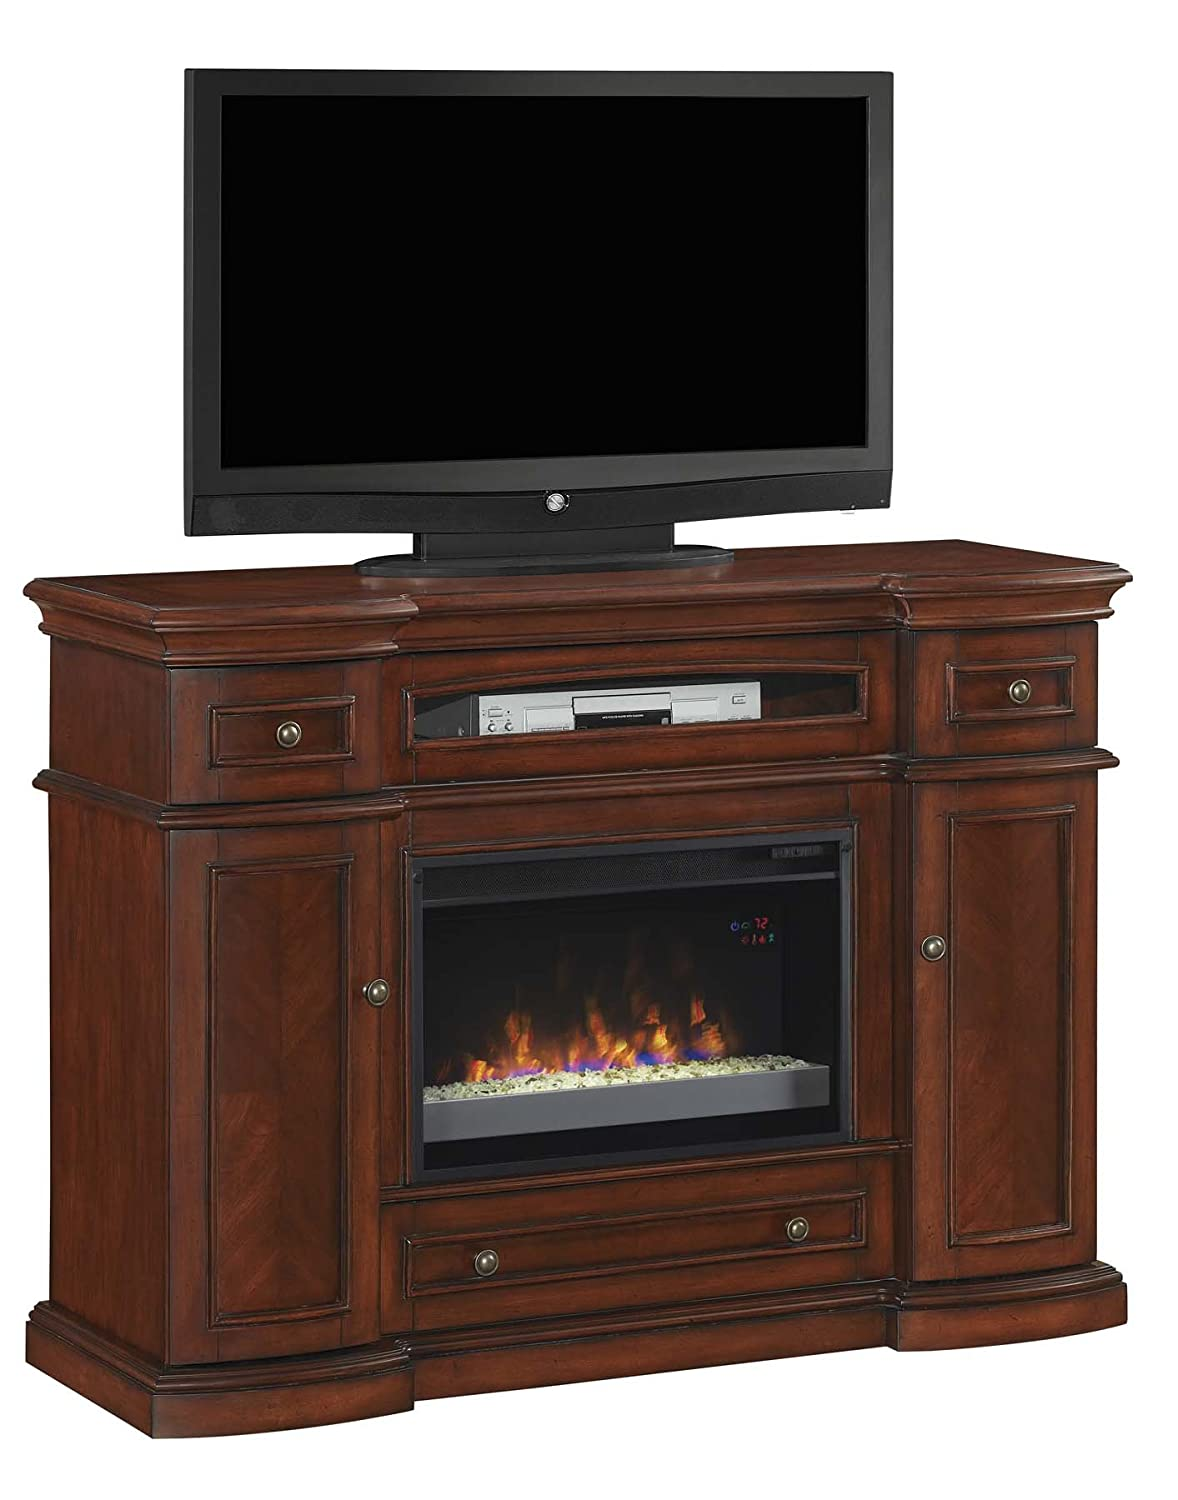 Amazoncom ClassicFlame MMC Montgomery TV Stand For TVs - Electric fireplace tv